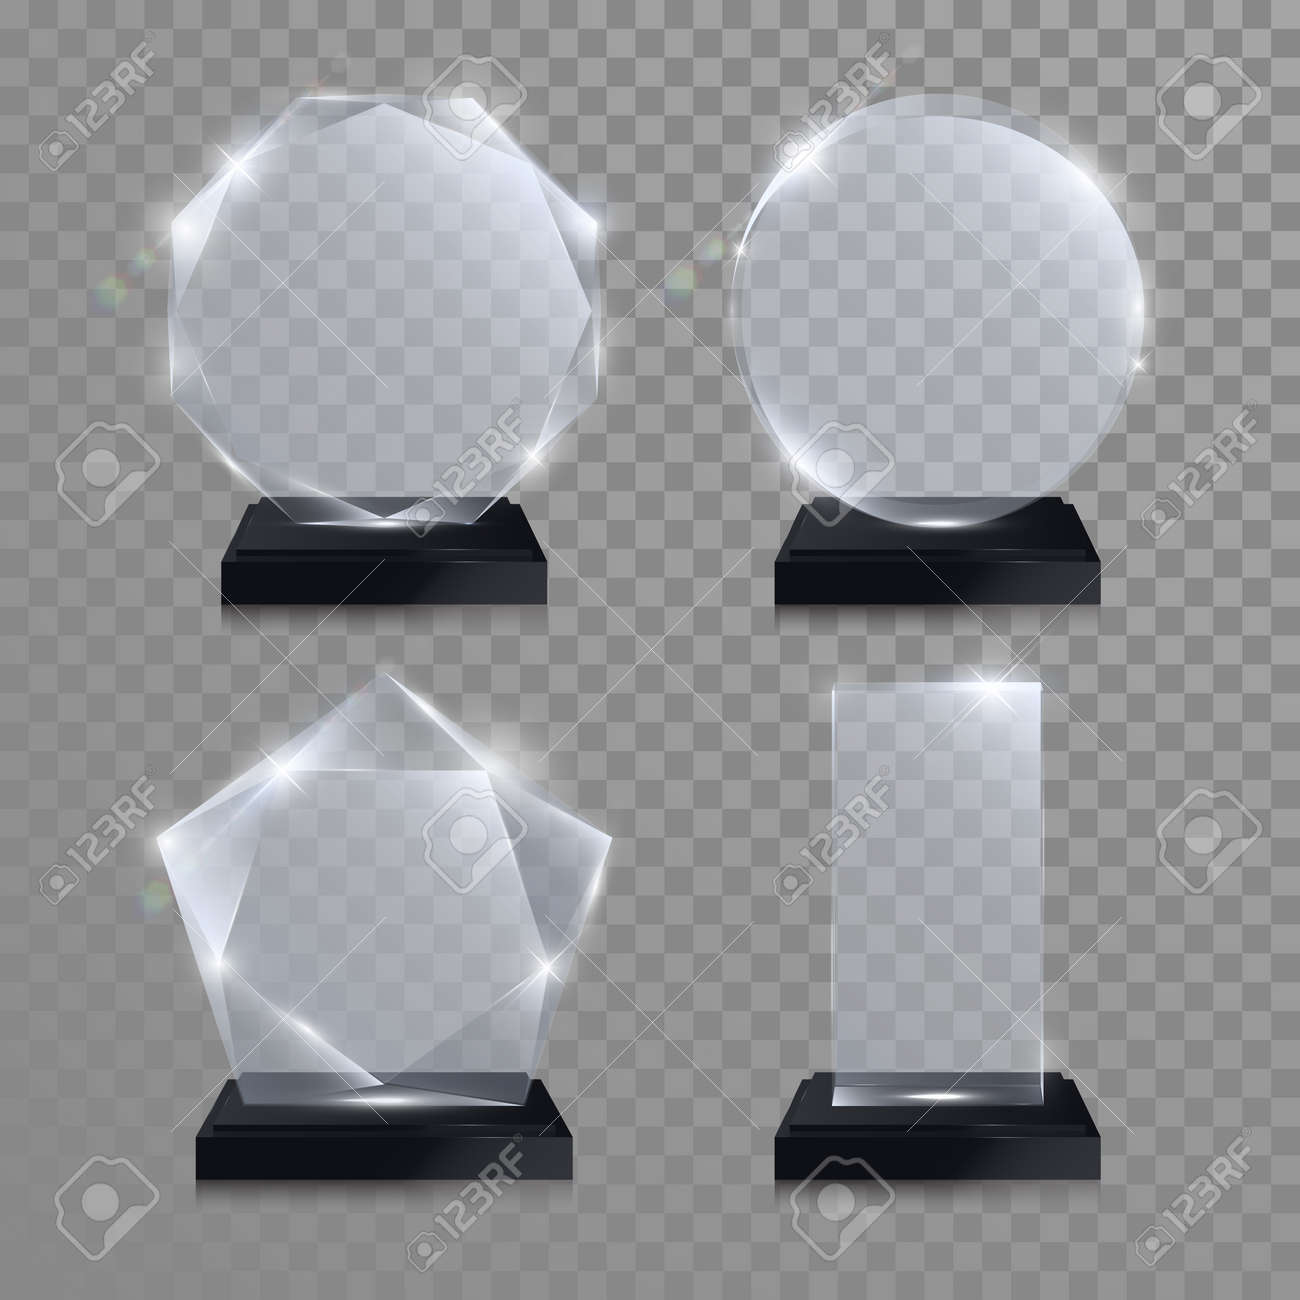 Glass trophy awards set. Vector crystal 3D transparent award mockup with pedestal on gray background. Glass acrylic prize round circle model for engraving. Round circle, square, octagonal, star shape - 64530680